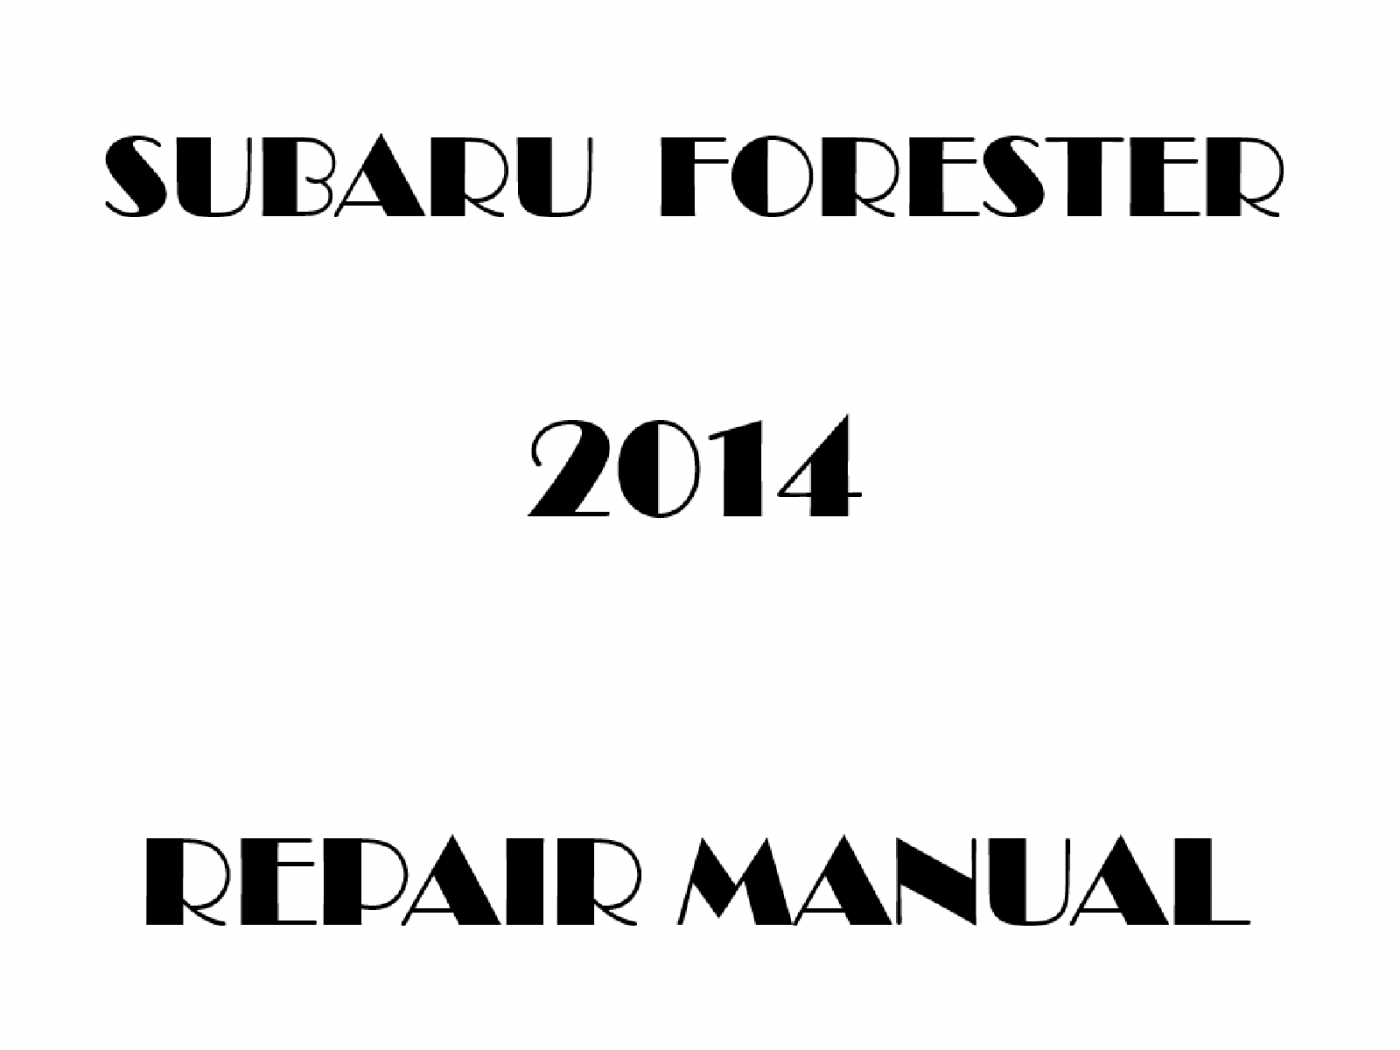 2014 Subaru Forester repair manual